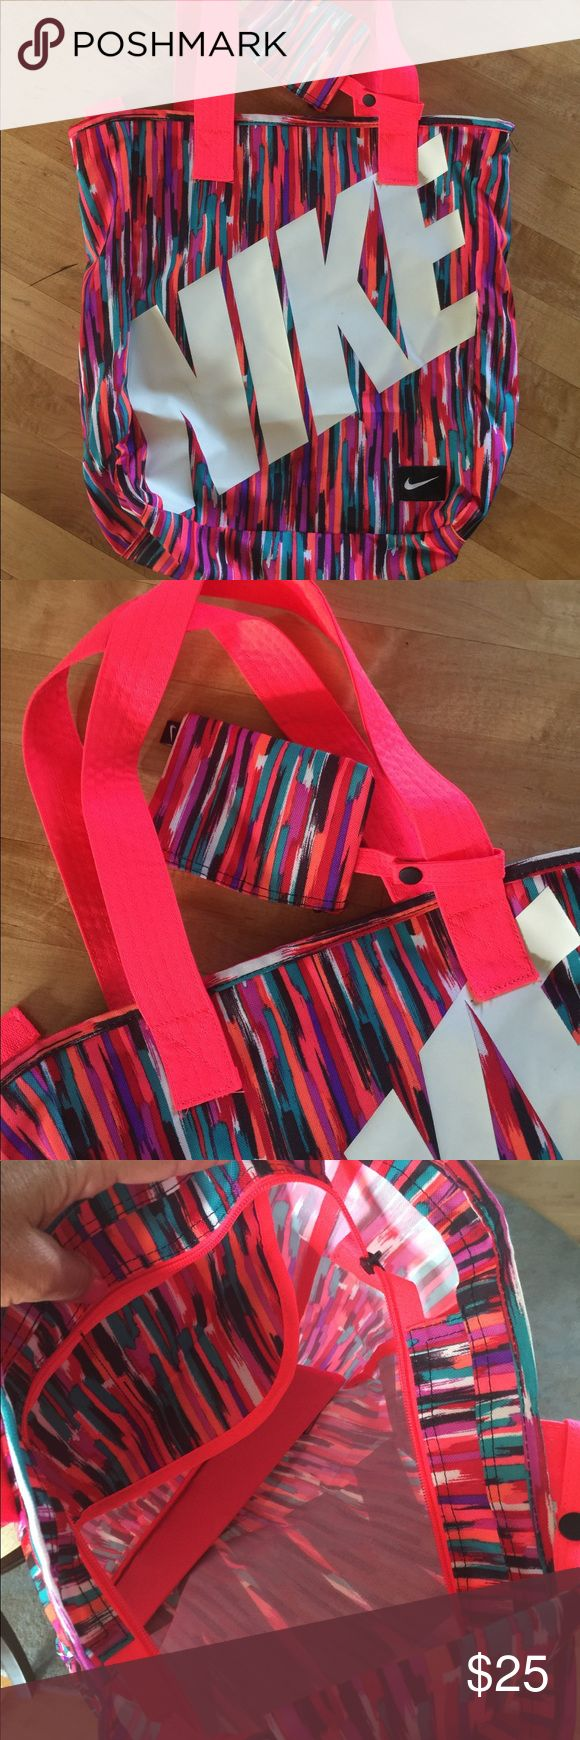 Bright colored Nike tote bag Zipper closure and inside pockets. 13 inches wide 15 inches tall. MeD Nike Bags Totes